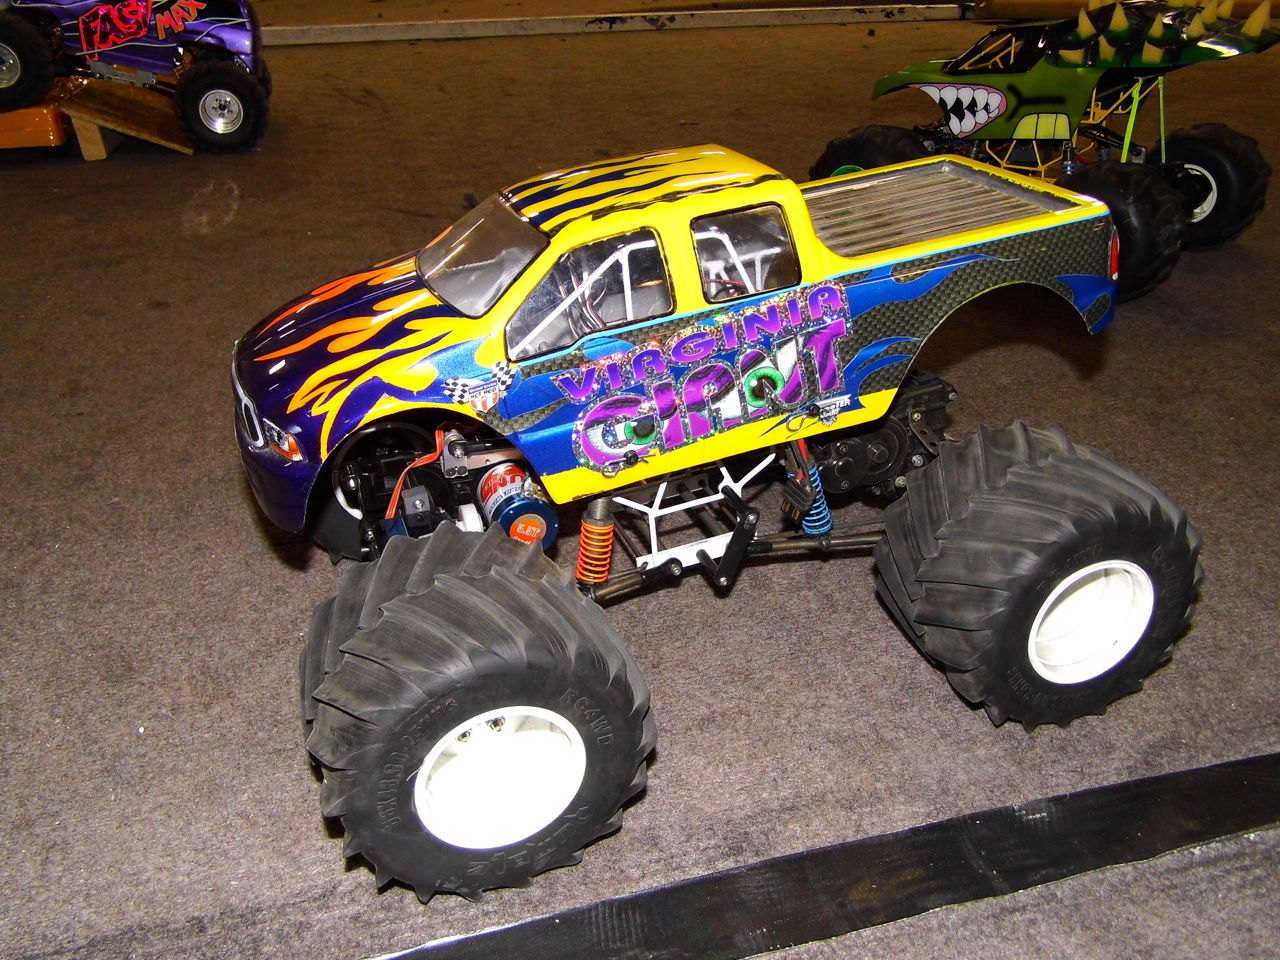 rc monster jam trucks for sale with Radio Control Monster Truck Challenge Winter Wars 1 2013 Rc Madness on  furthermore P578919 besides Hot Wheels Basic Cars Assorted also 250680938329 moreover O Motto Remix Prod By T Minus Explicit.